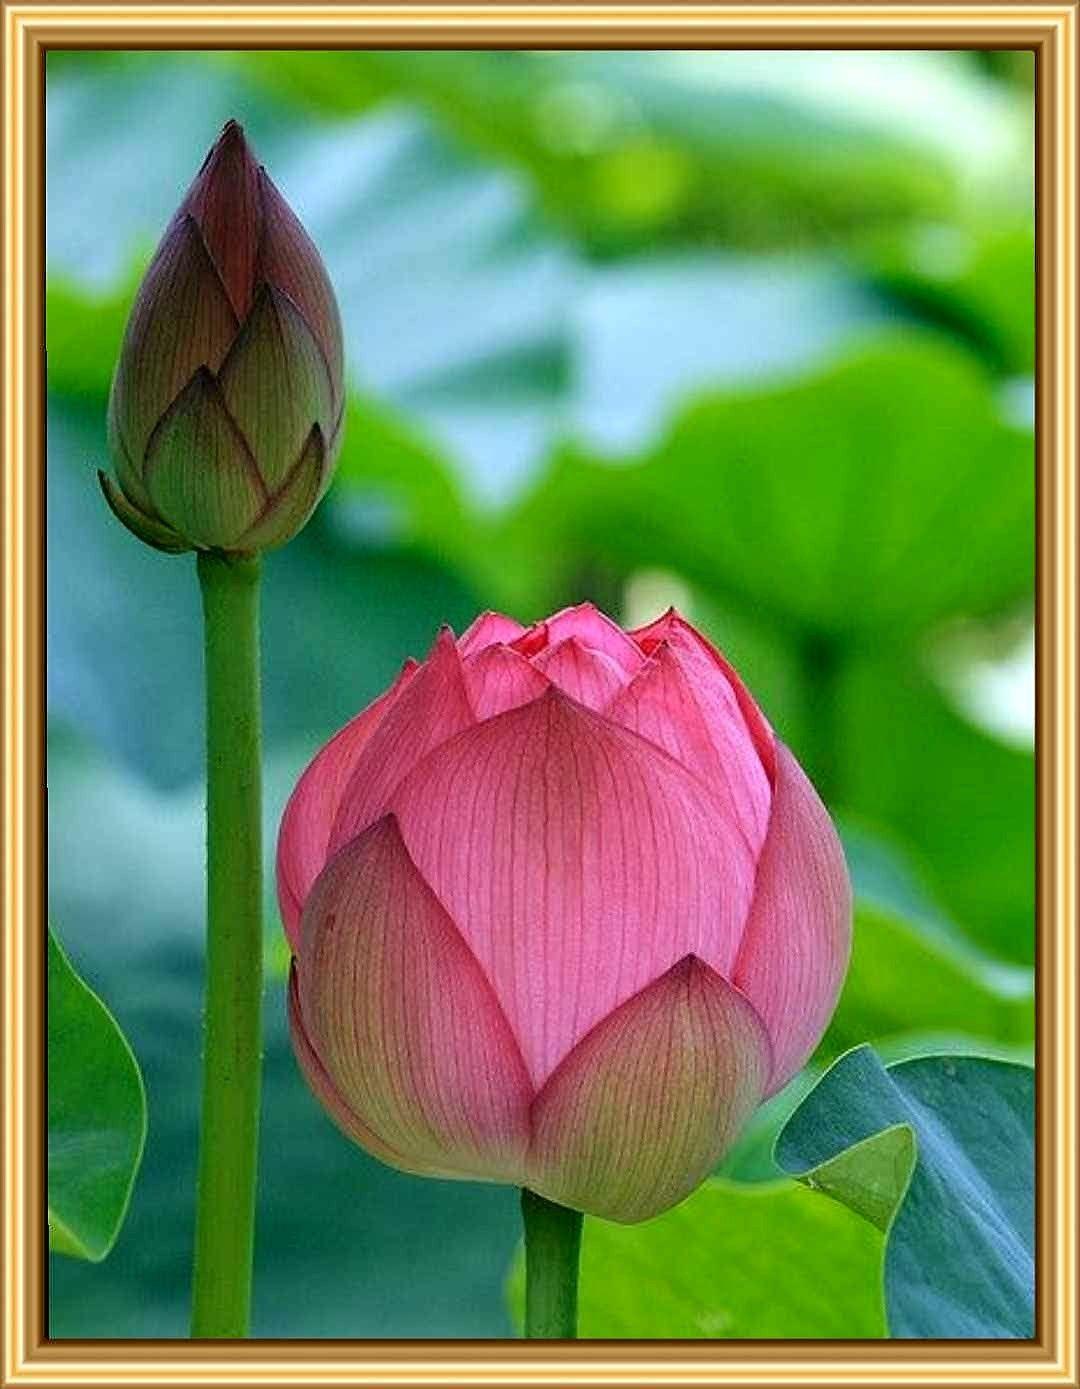 Pin by suthaporn ammy kaewthong on 1 flowers ff pinterest lotus the top 3 questions i regularly get asked are how much do you charge for coaching under specific circumstances and my availabilit izmirmasajfo